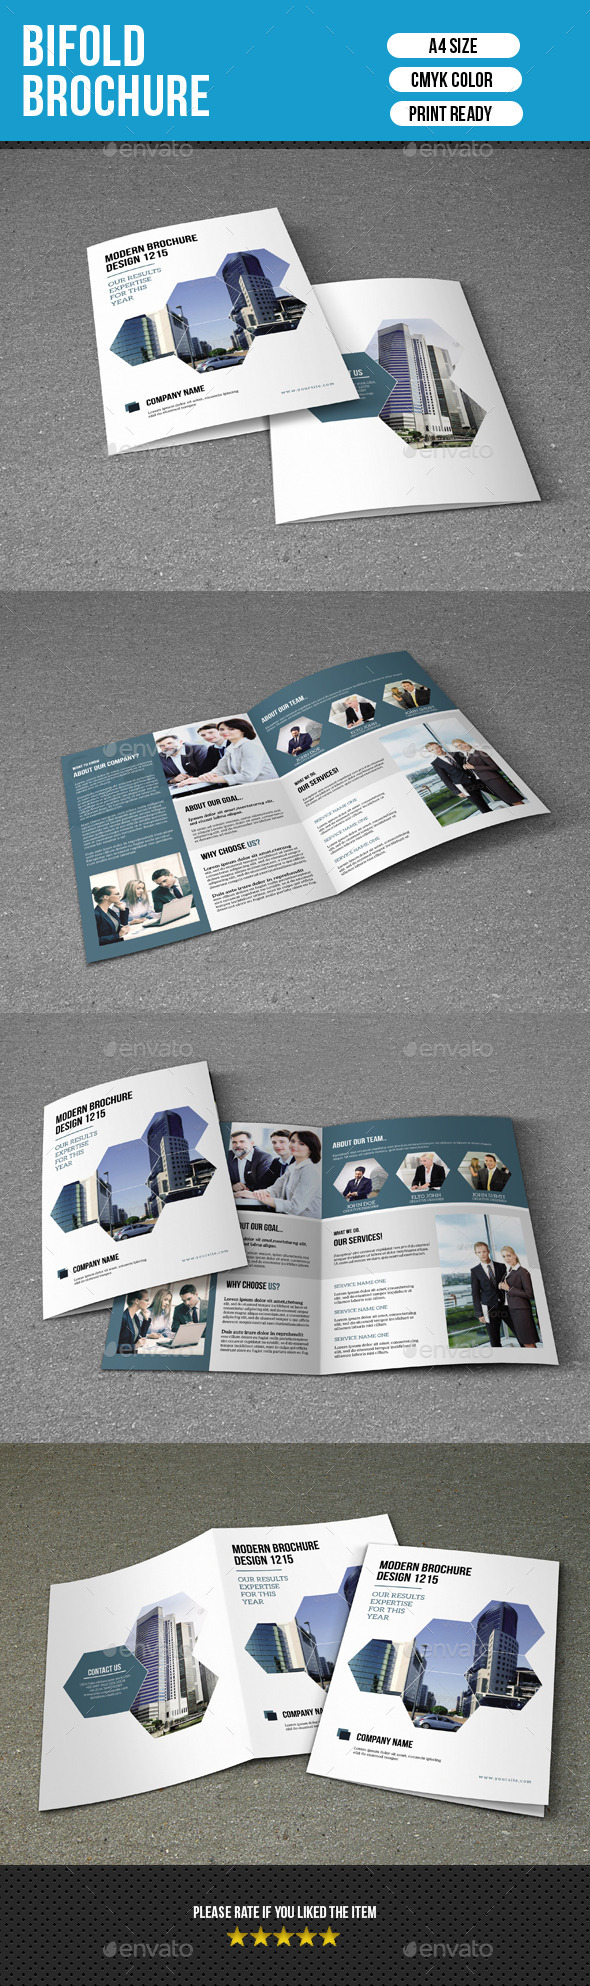 Bifold Brochure for Business-V161 - Corporate Brochures